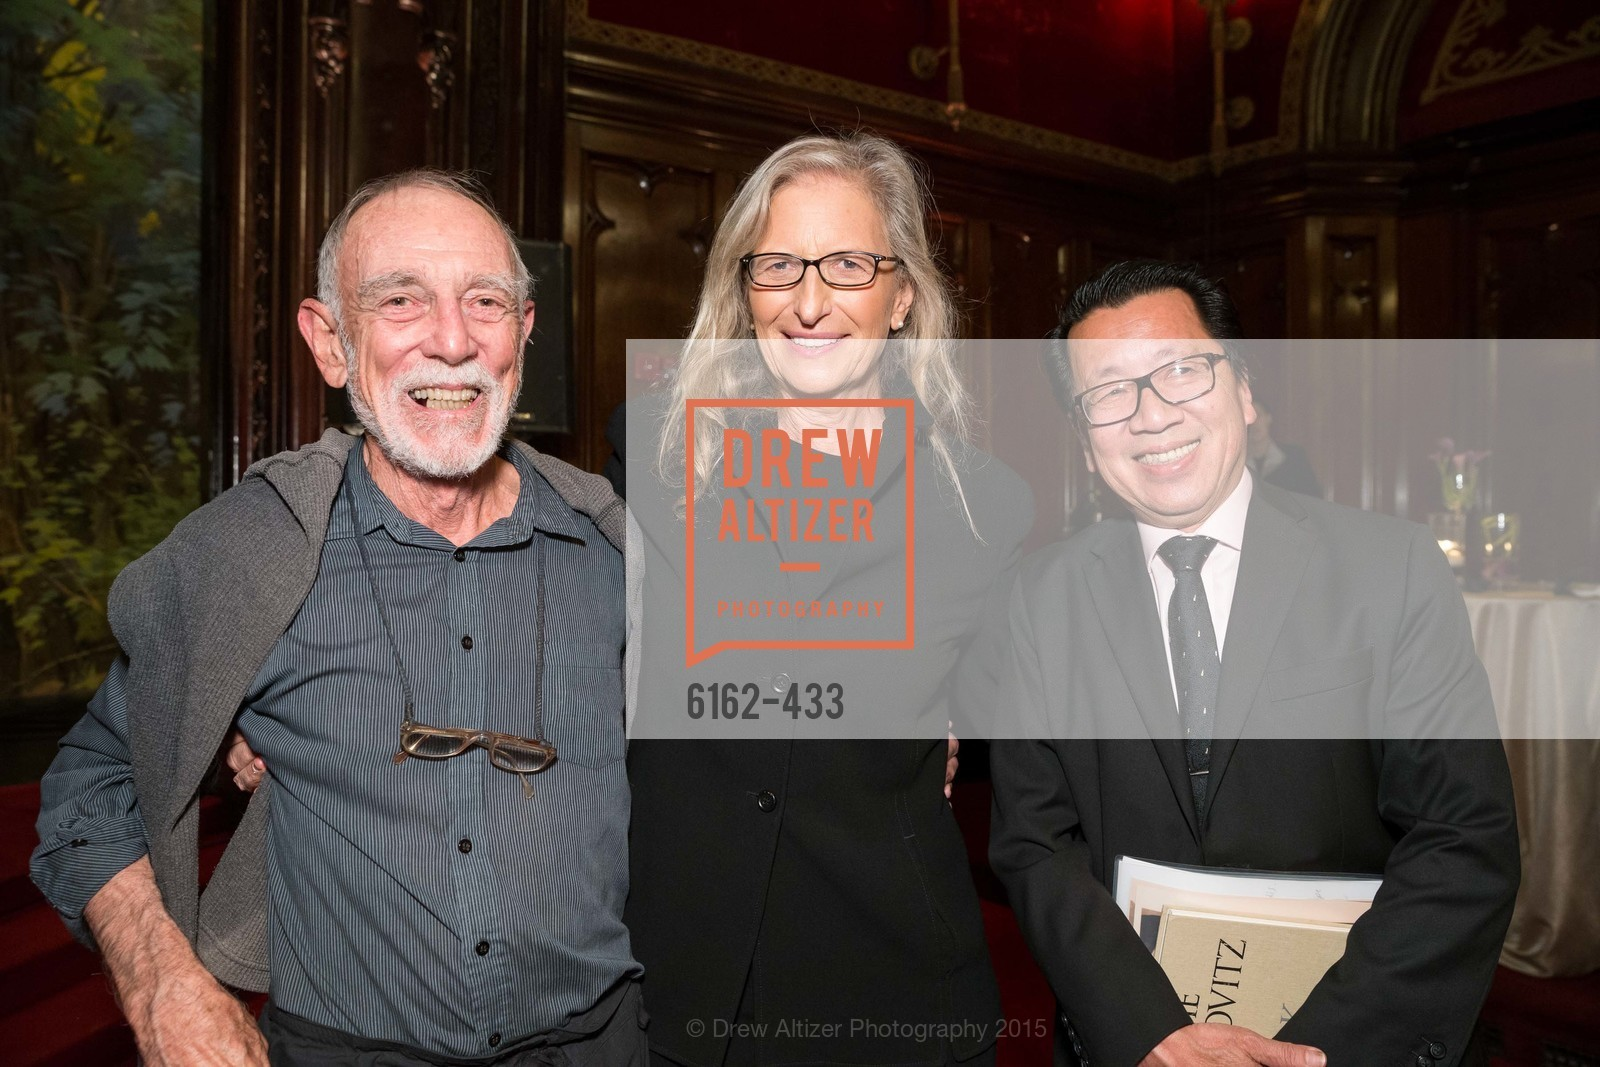 Robert Kingsbury, Annie Leibovitz, Ben Fong-Torres, SFMOMA Contemporary Vision Award, Regency Ballroom. 1300 Van Ness, November 3rd, 2015,Drew Altizer, Drew Altizer Photography, full-service agency, private events, San Francisco photographer, photographer california